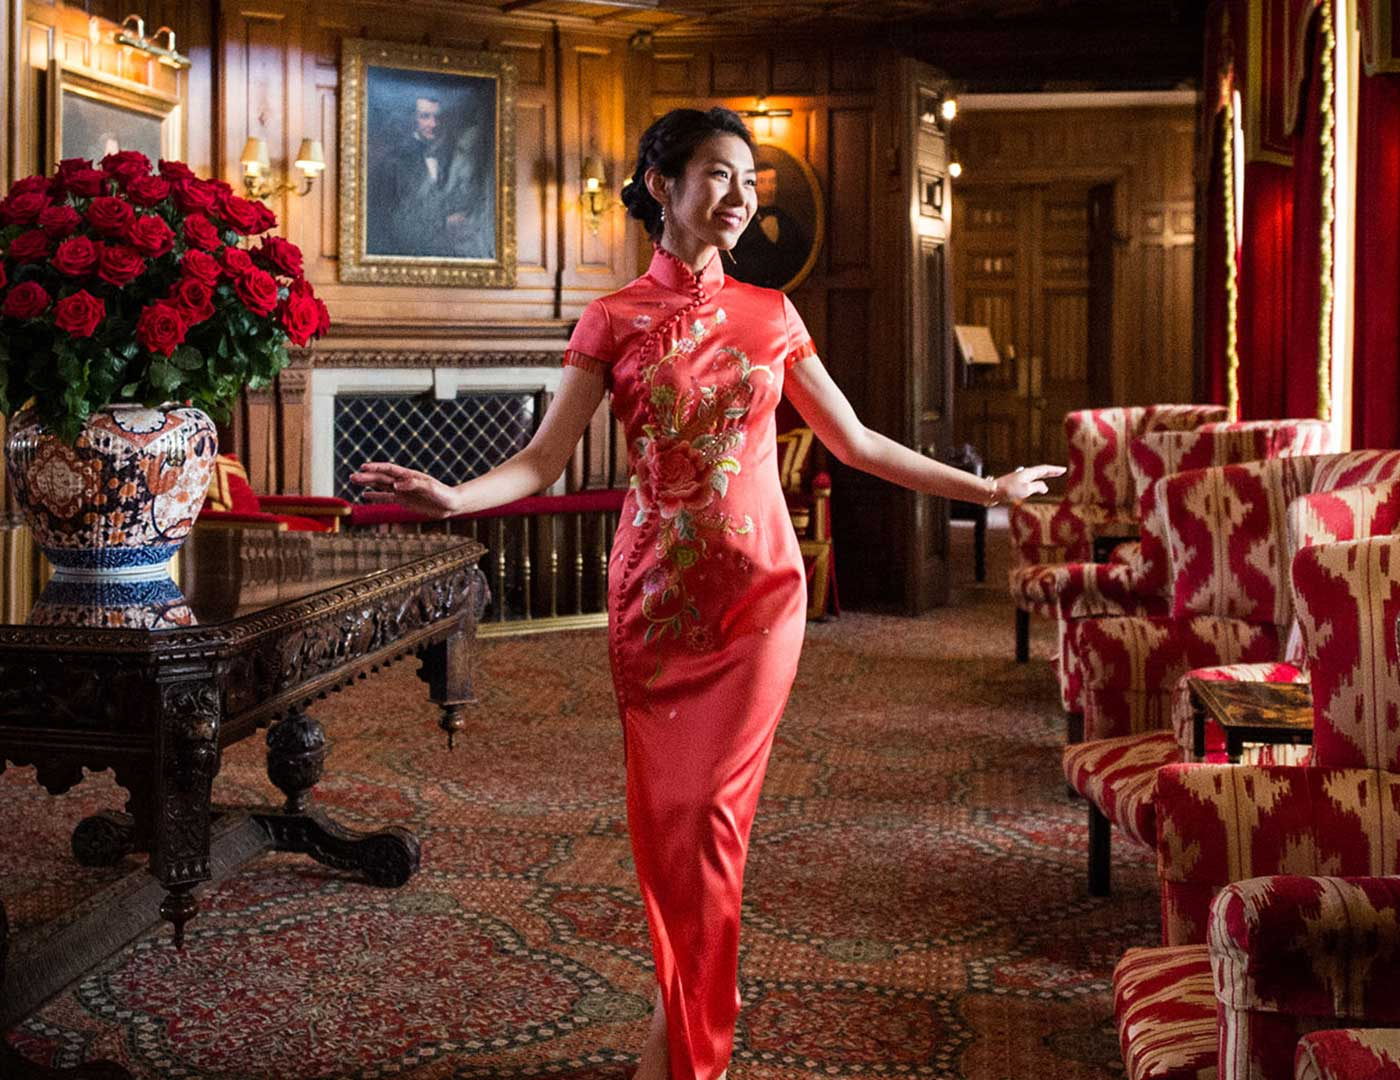 Ashford Castle Wedding, Chinese Wedding Ceremony, Chinese traditions, Chinese tea ceremony, Olivia Buckley International, Destination Wedding, Event Planner in Ireland